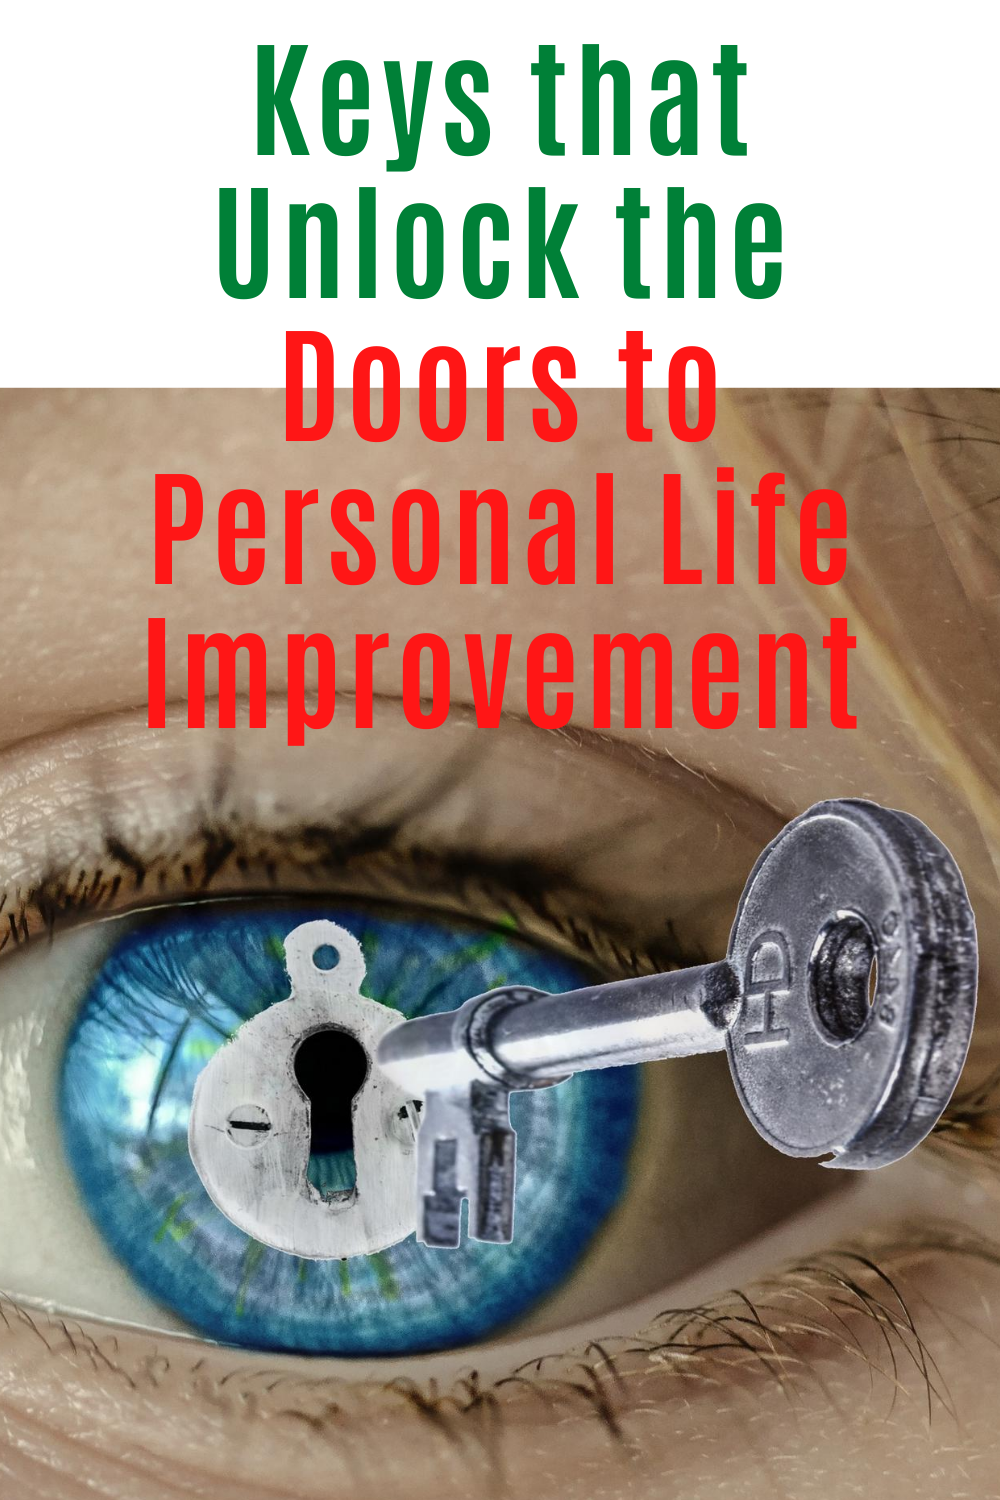 Keys that unlock the doors to personal life improvement